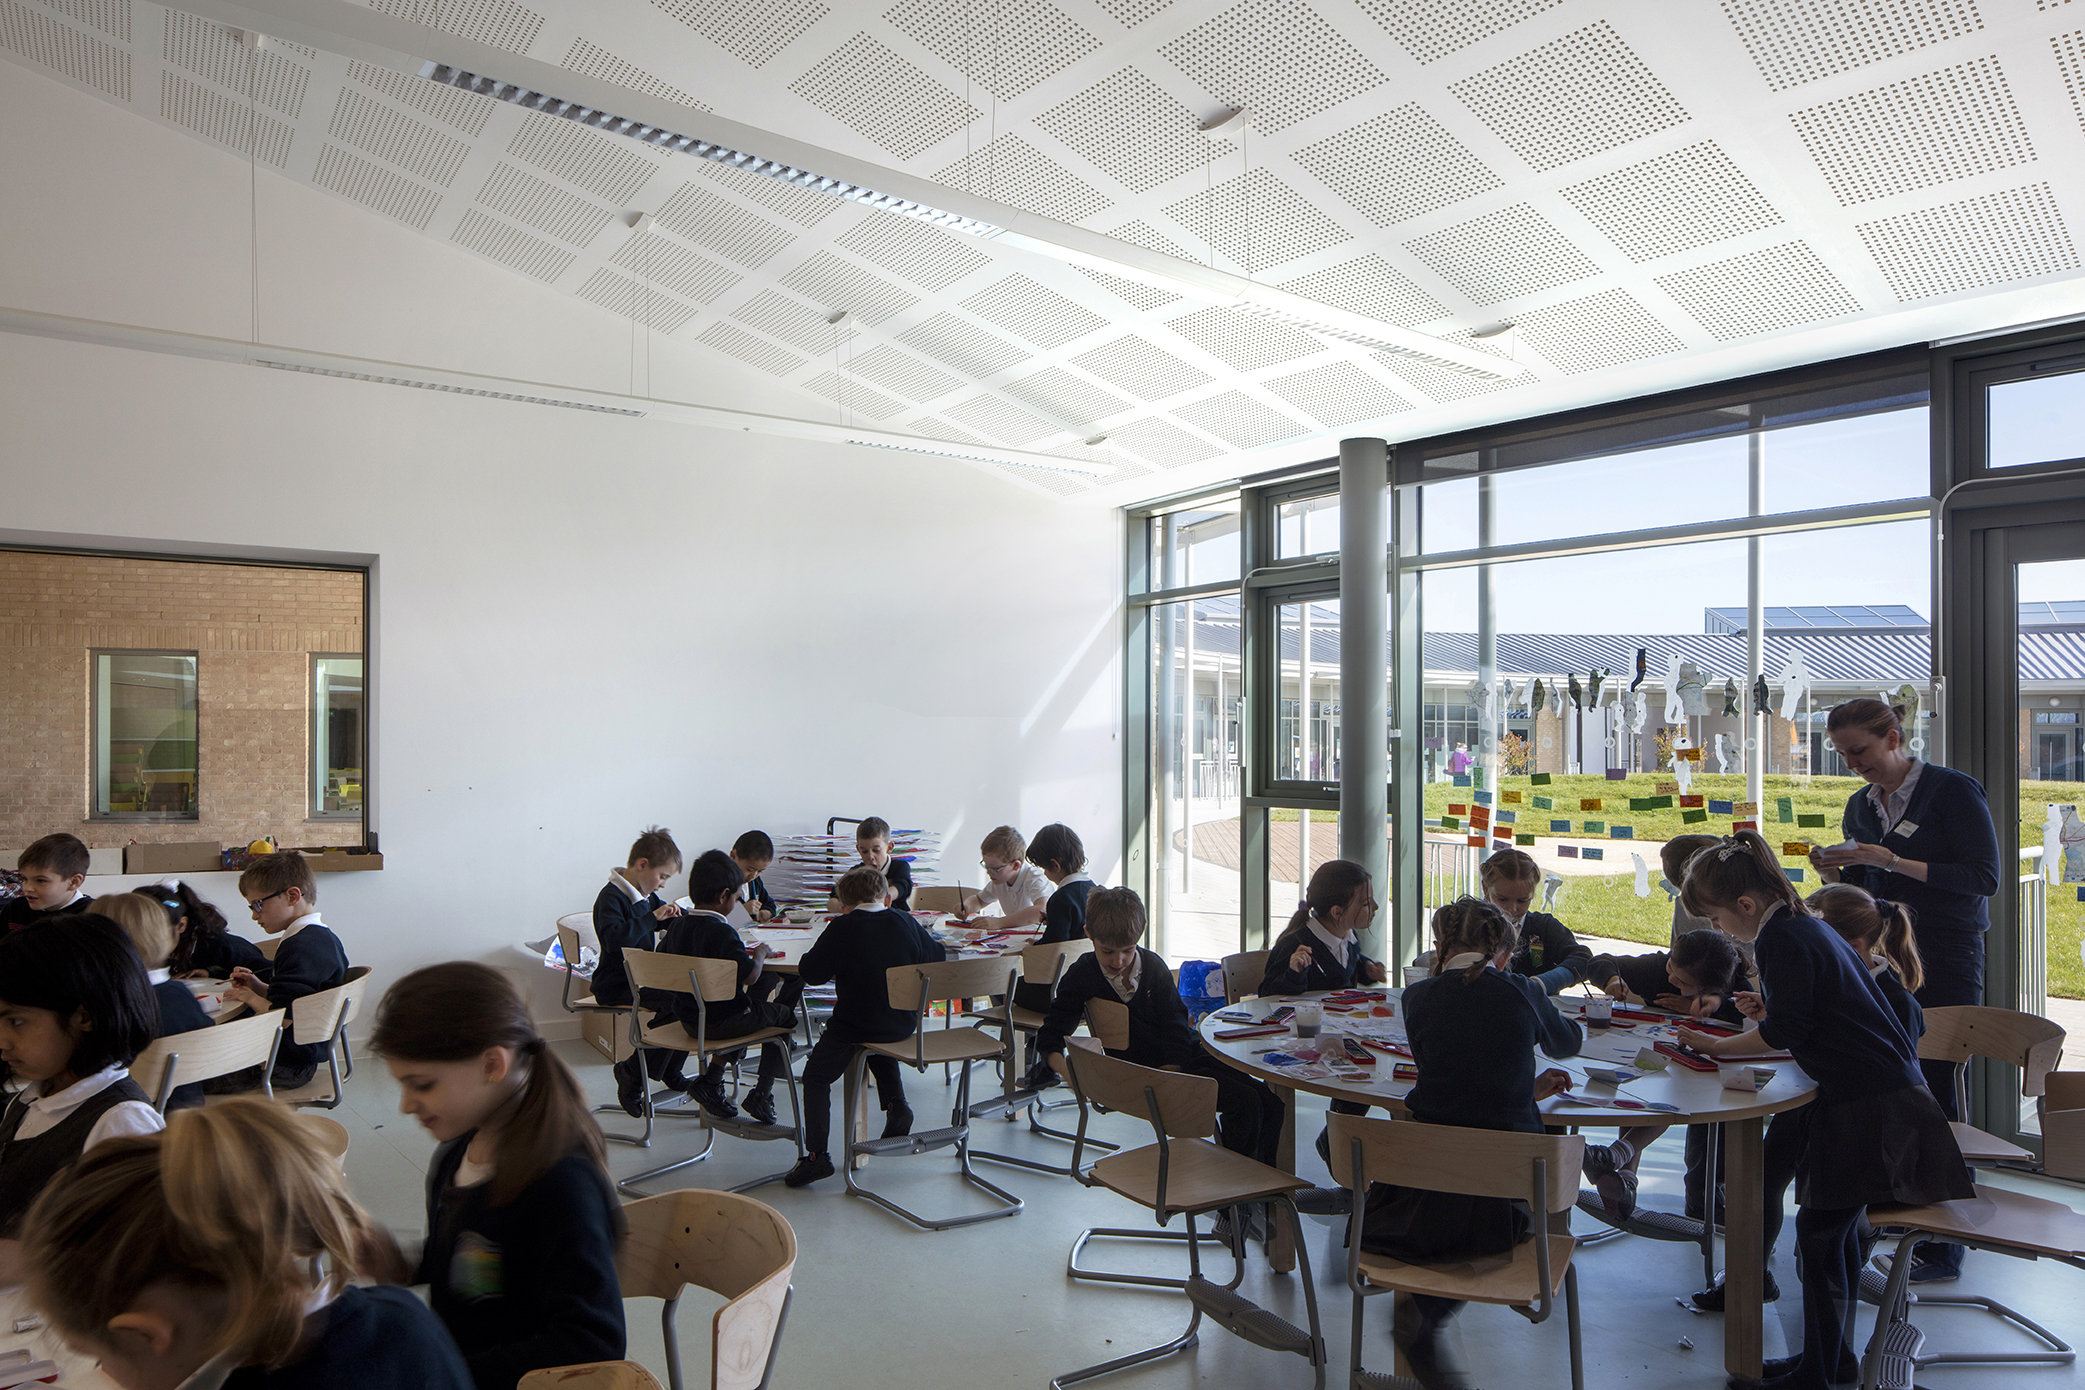 classroom - University of Cambridge Primary School by Marks Barfield Architects